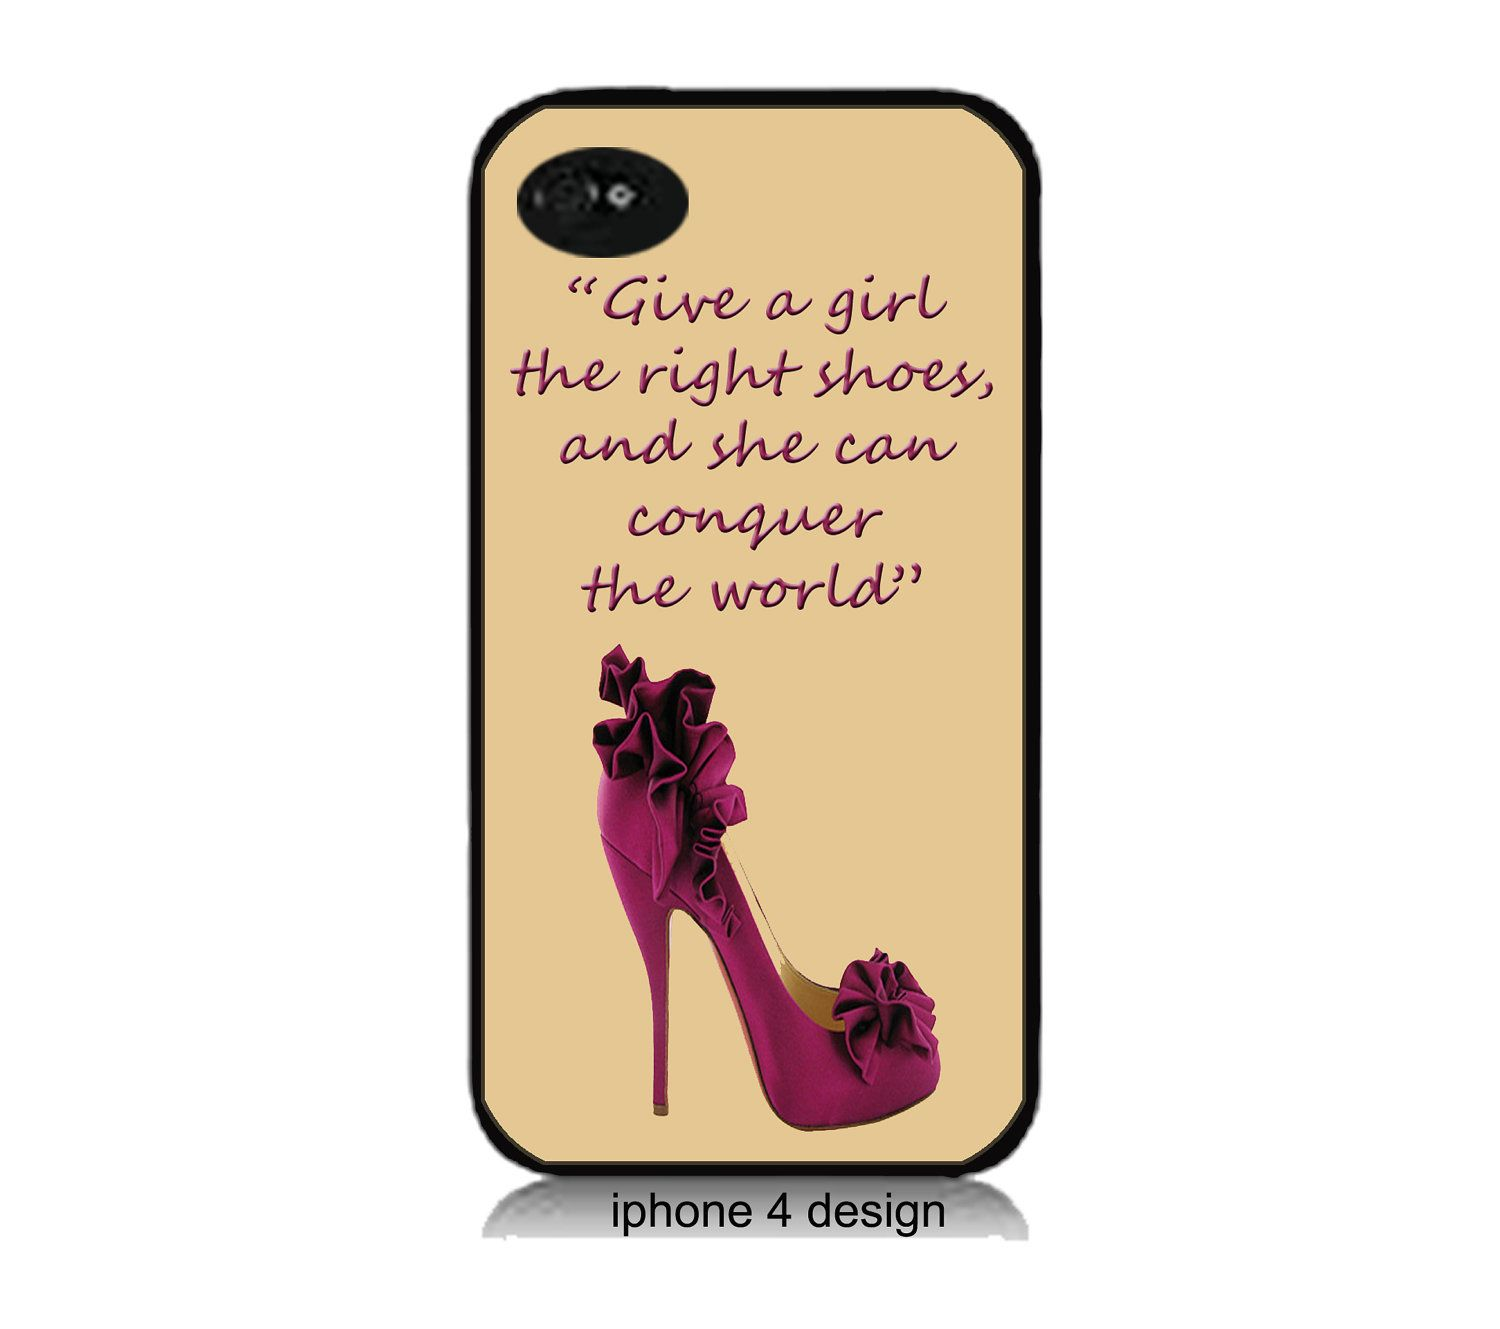 Iphone 5 Cases Marilyn Monroe Quotes Marilyn Monroe Quote, ...